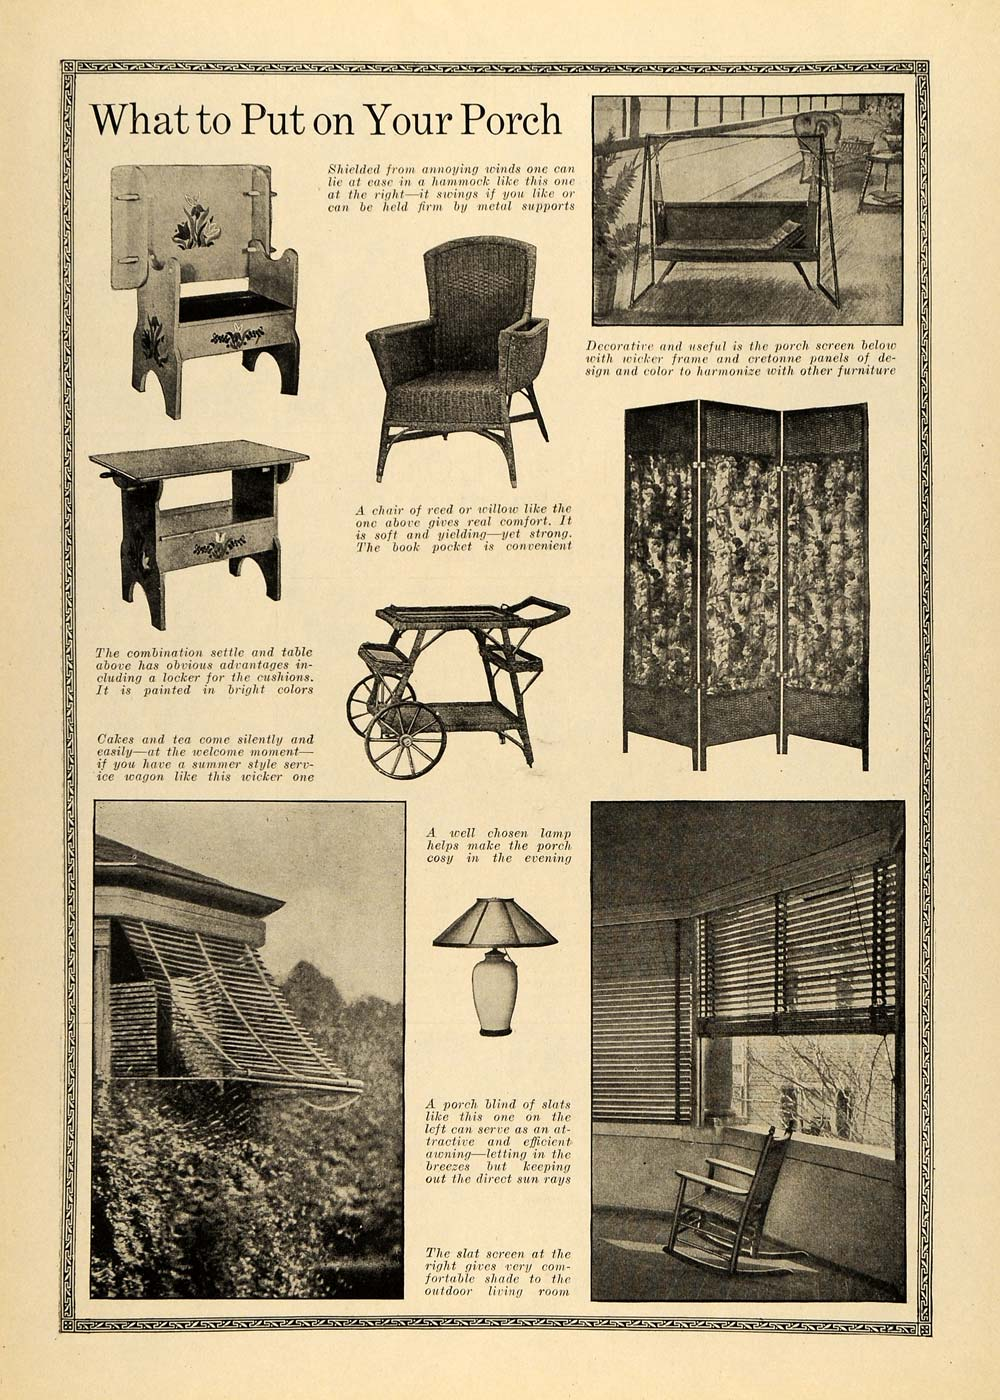 1918 Article Porch Furniture Chair Room Divide Decorate - ORIGINAL TIN2